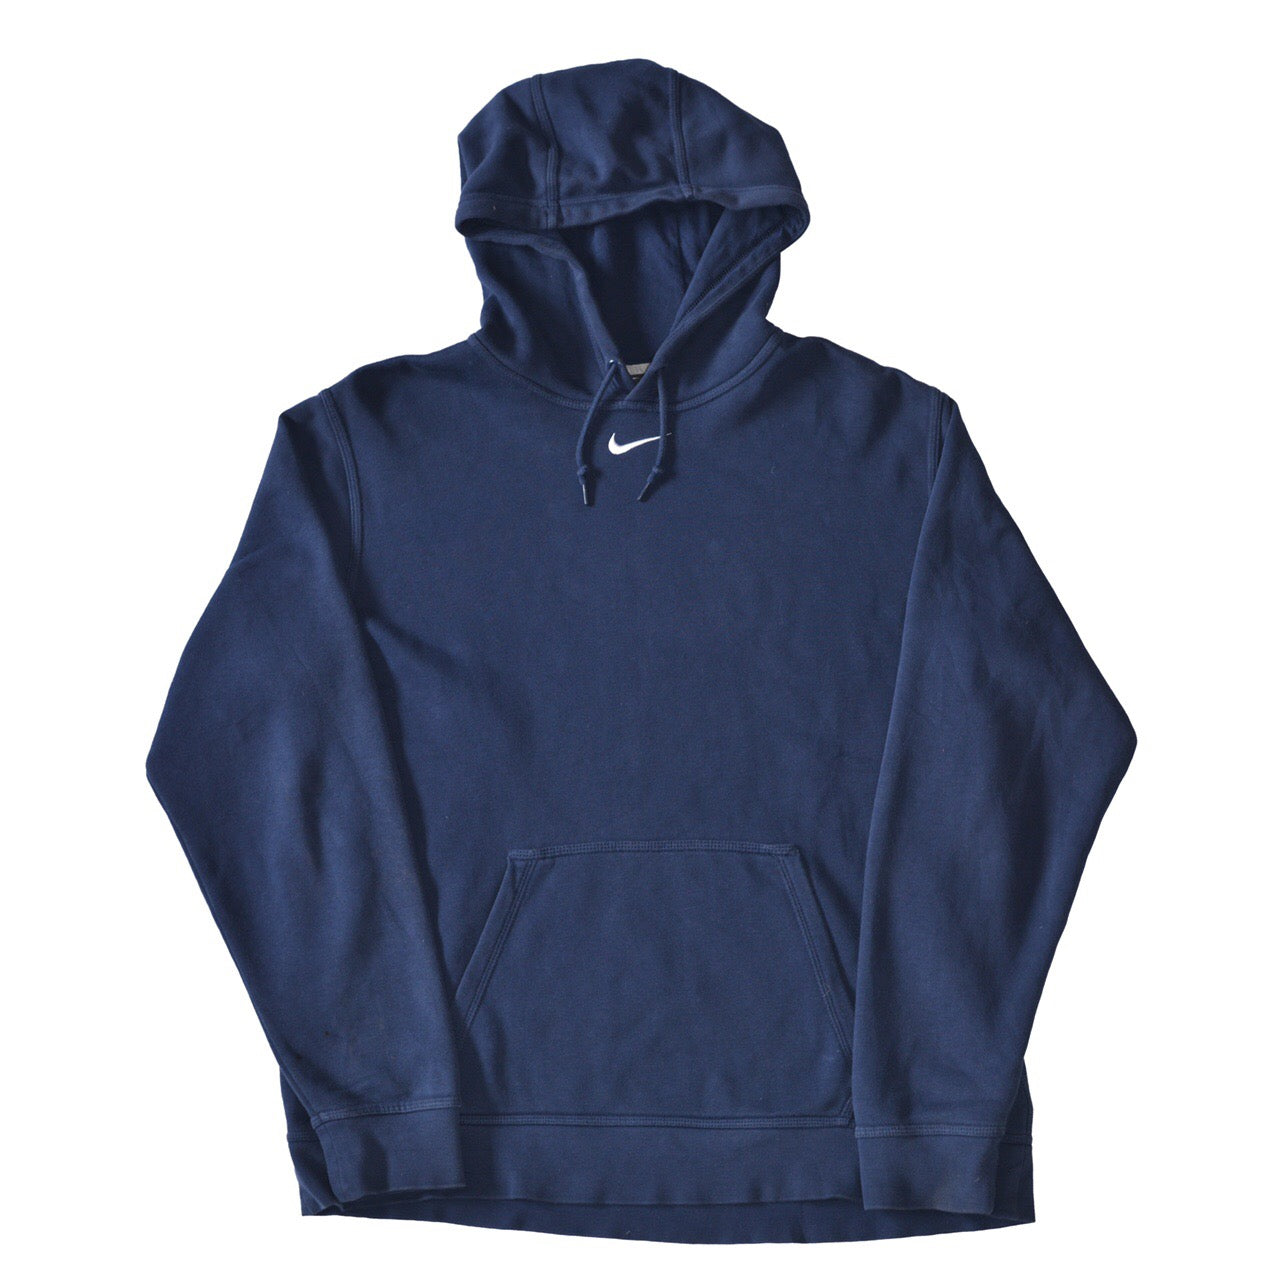 Vintage Nike Centre Swoosh Hoodie Navy - Small